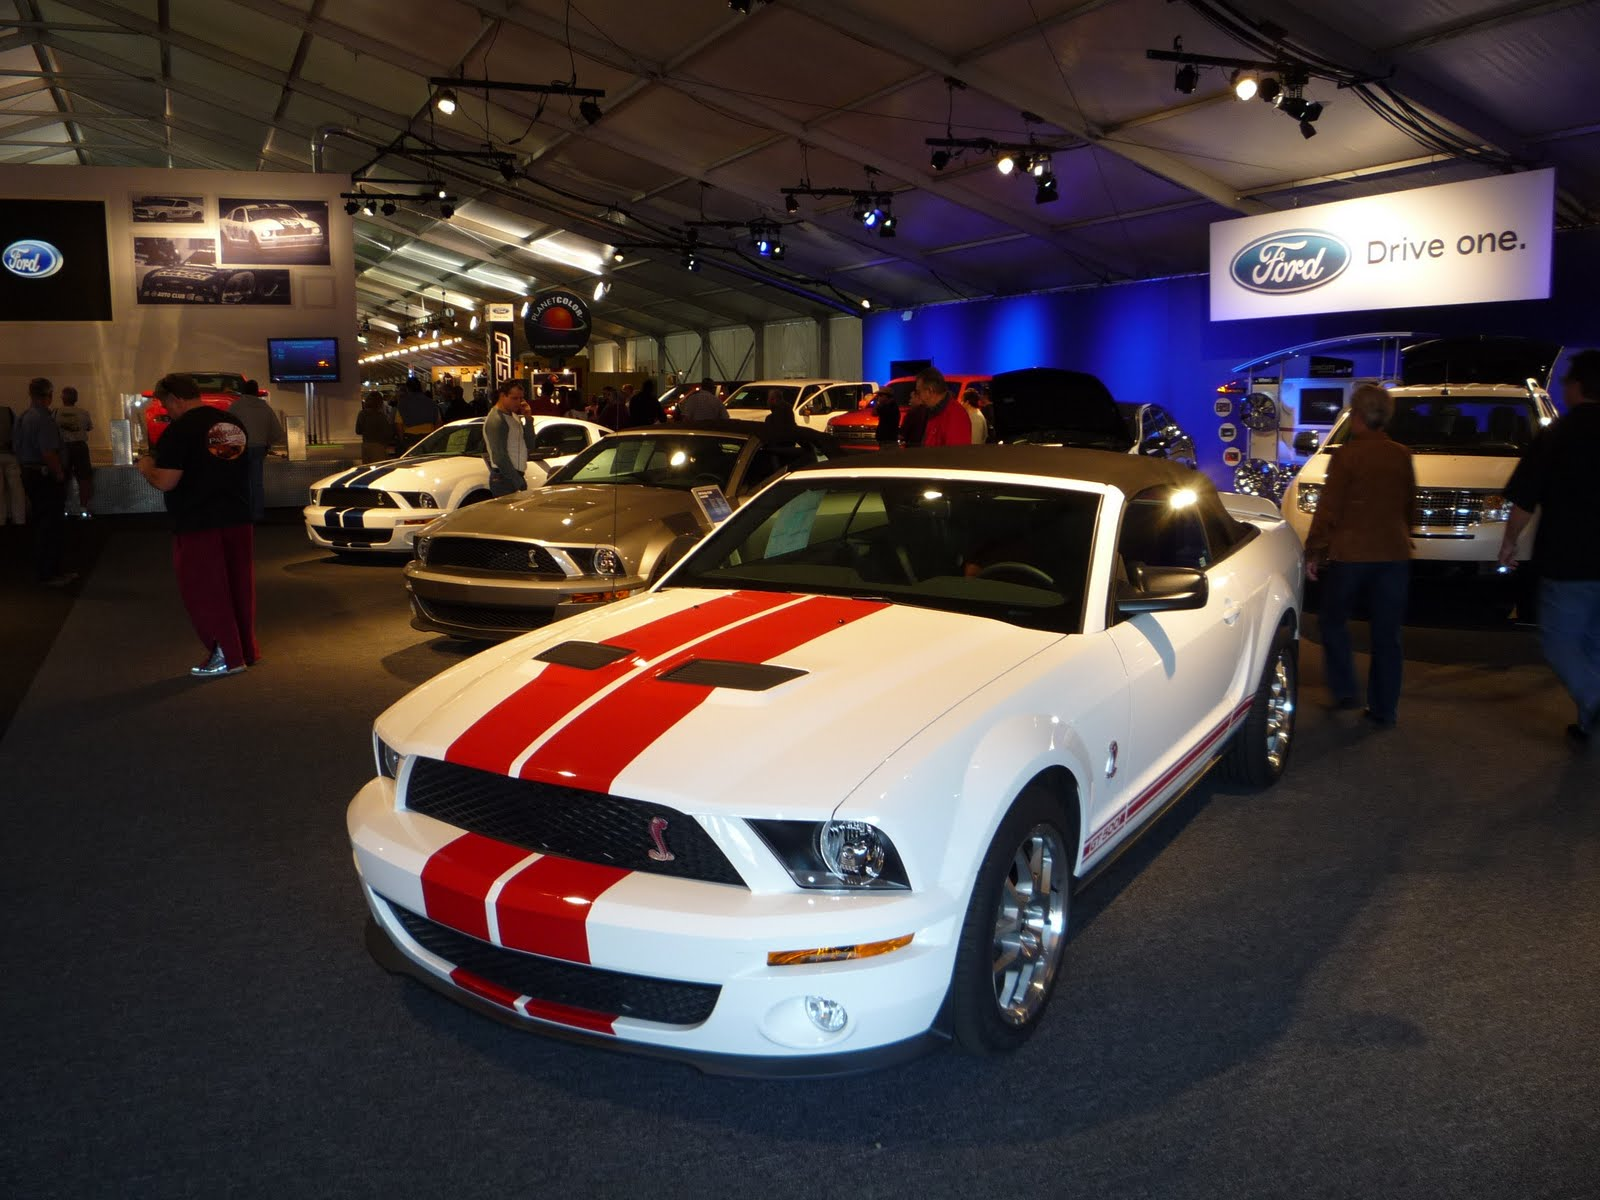 Adding a Mustang cowl hood is